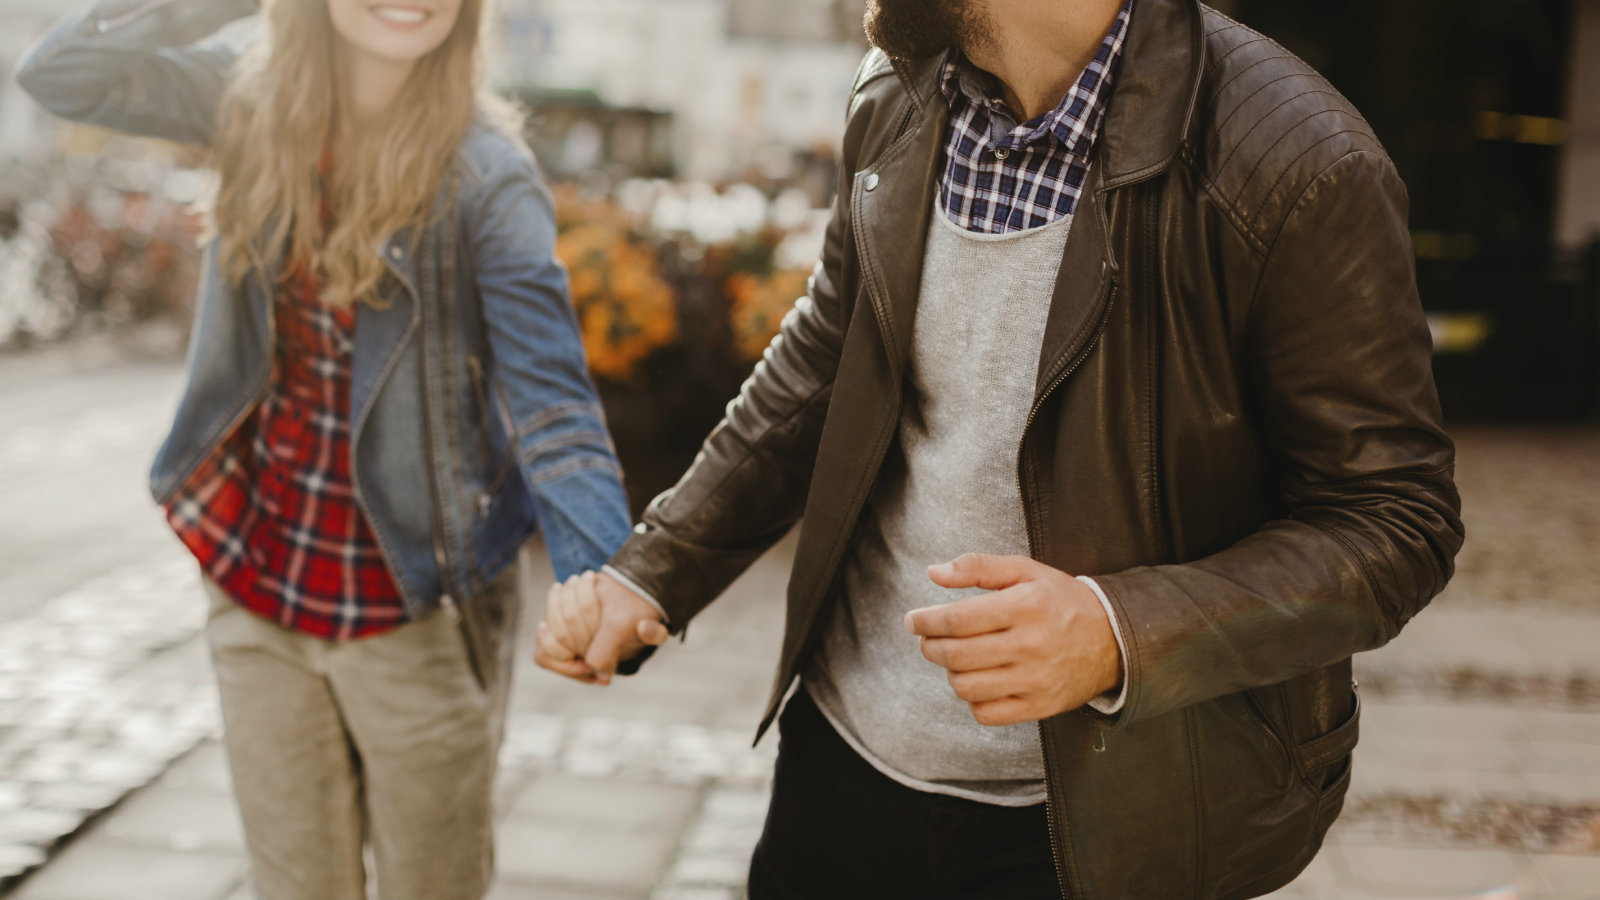 desiring god dating and singleness meaning